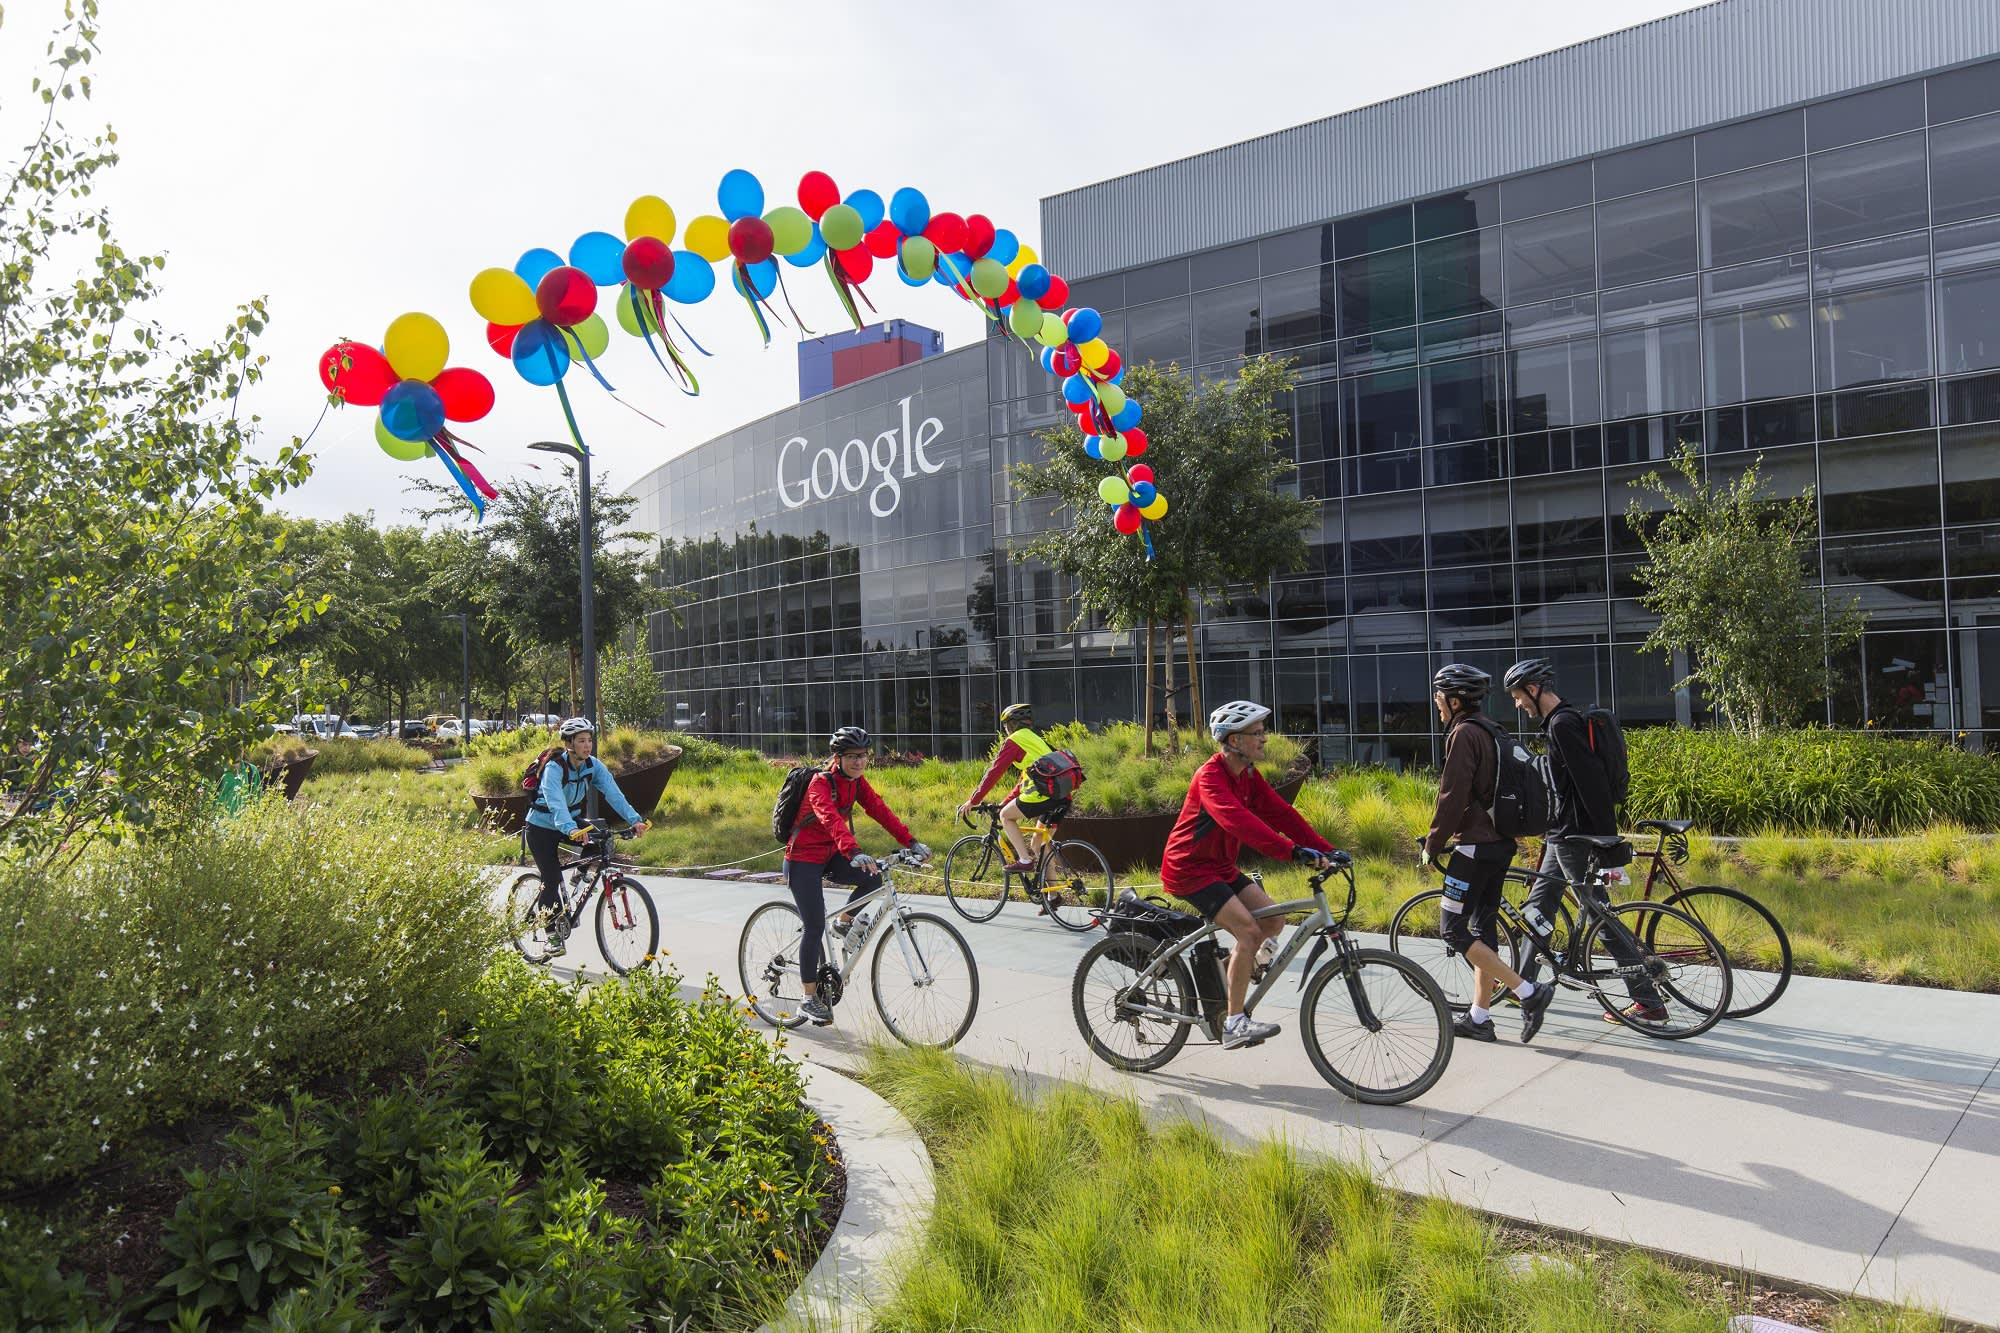 Baird bets on Google's cloud business, says upside is not priced in the stock